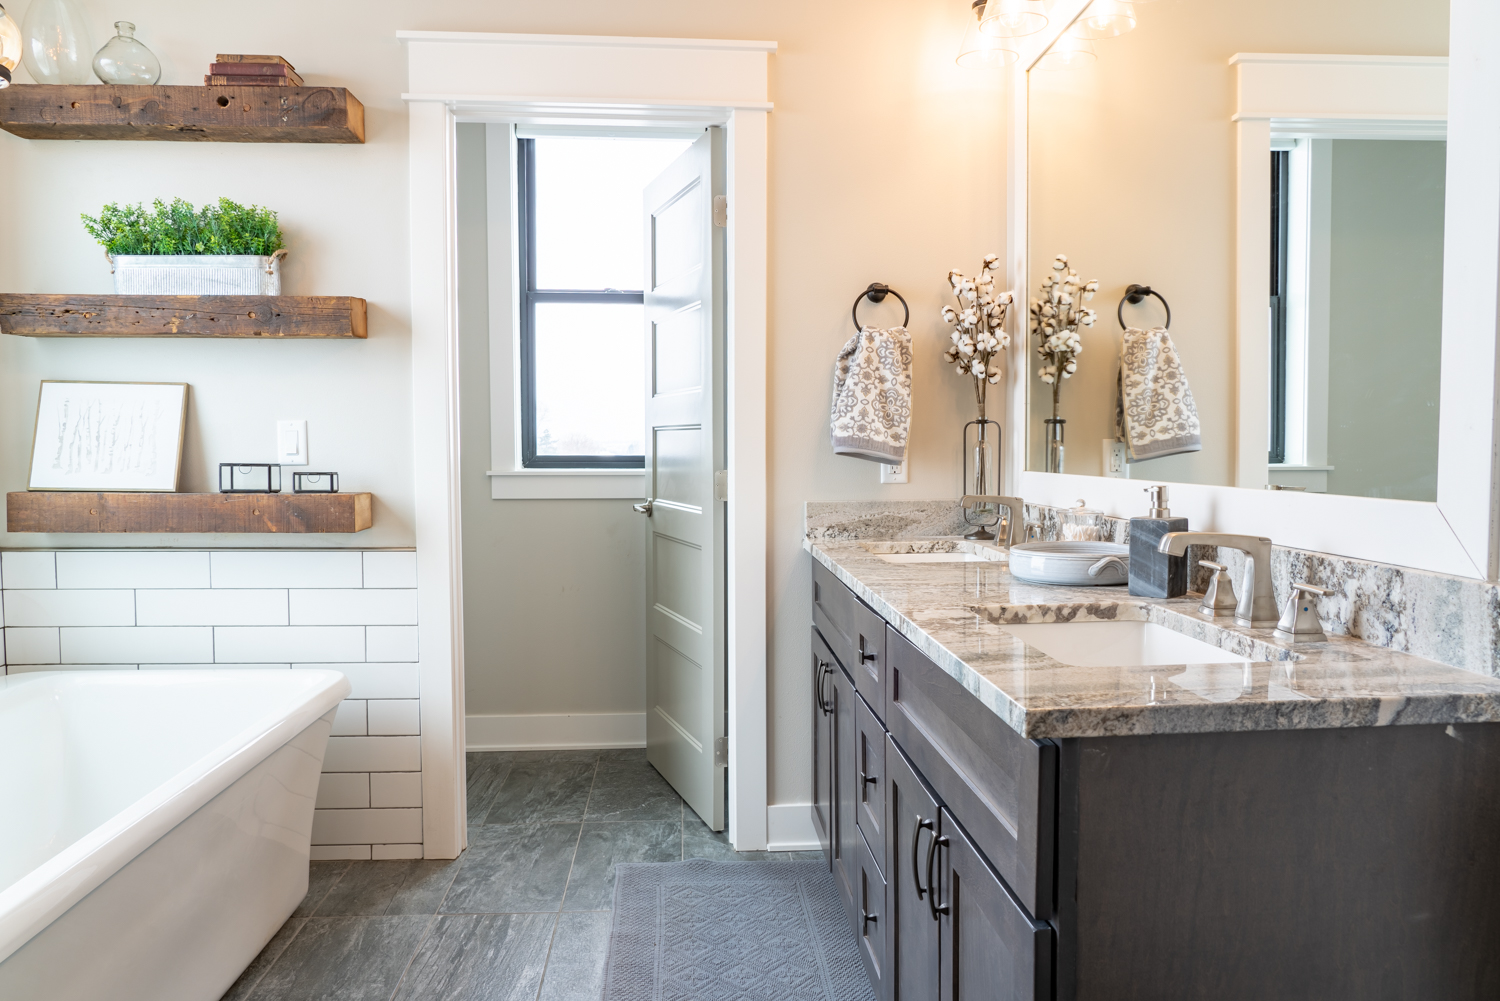 Sherer_Construction_his_and_hers_sink.jpg